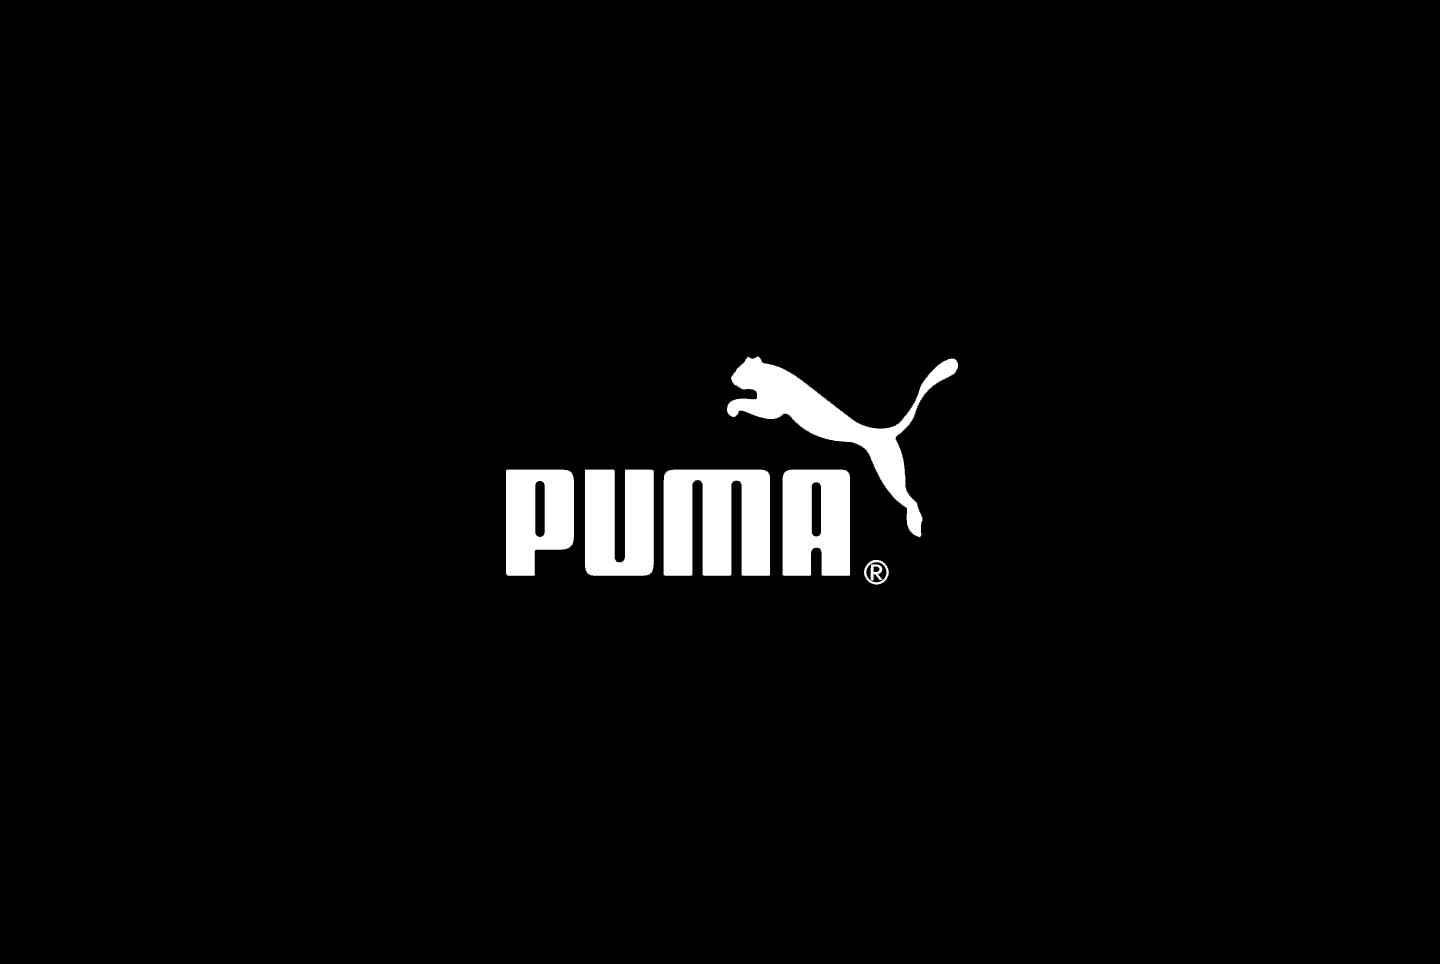 How did Puma adapt its strategy over the years ...